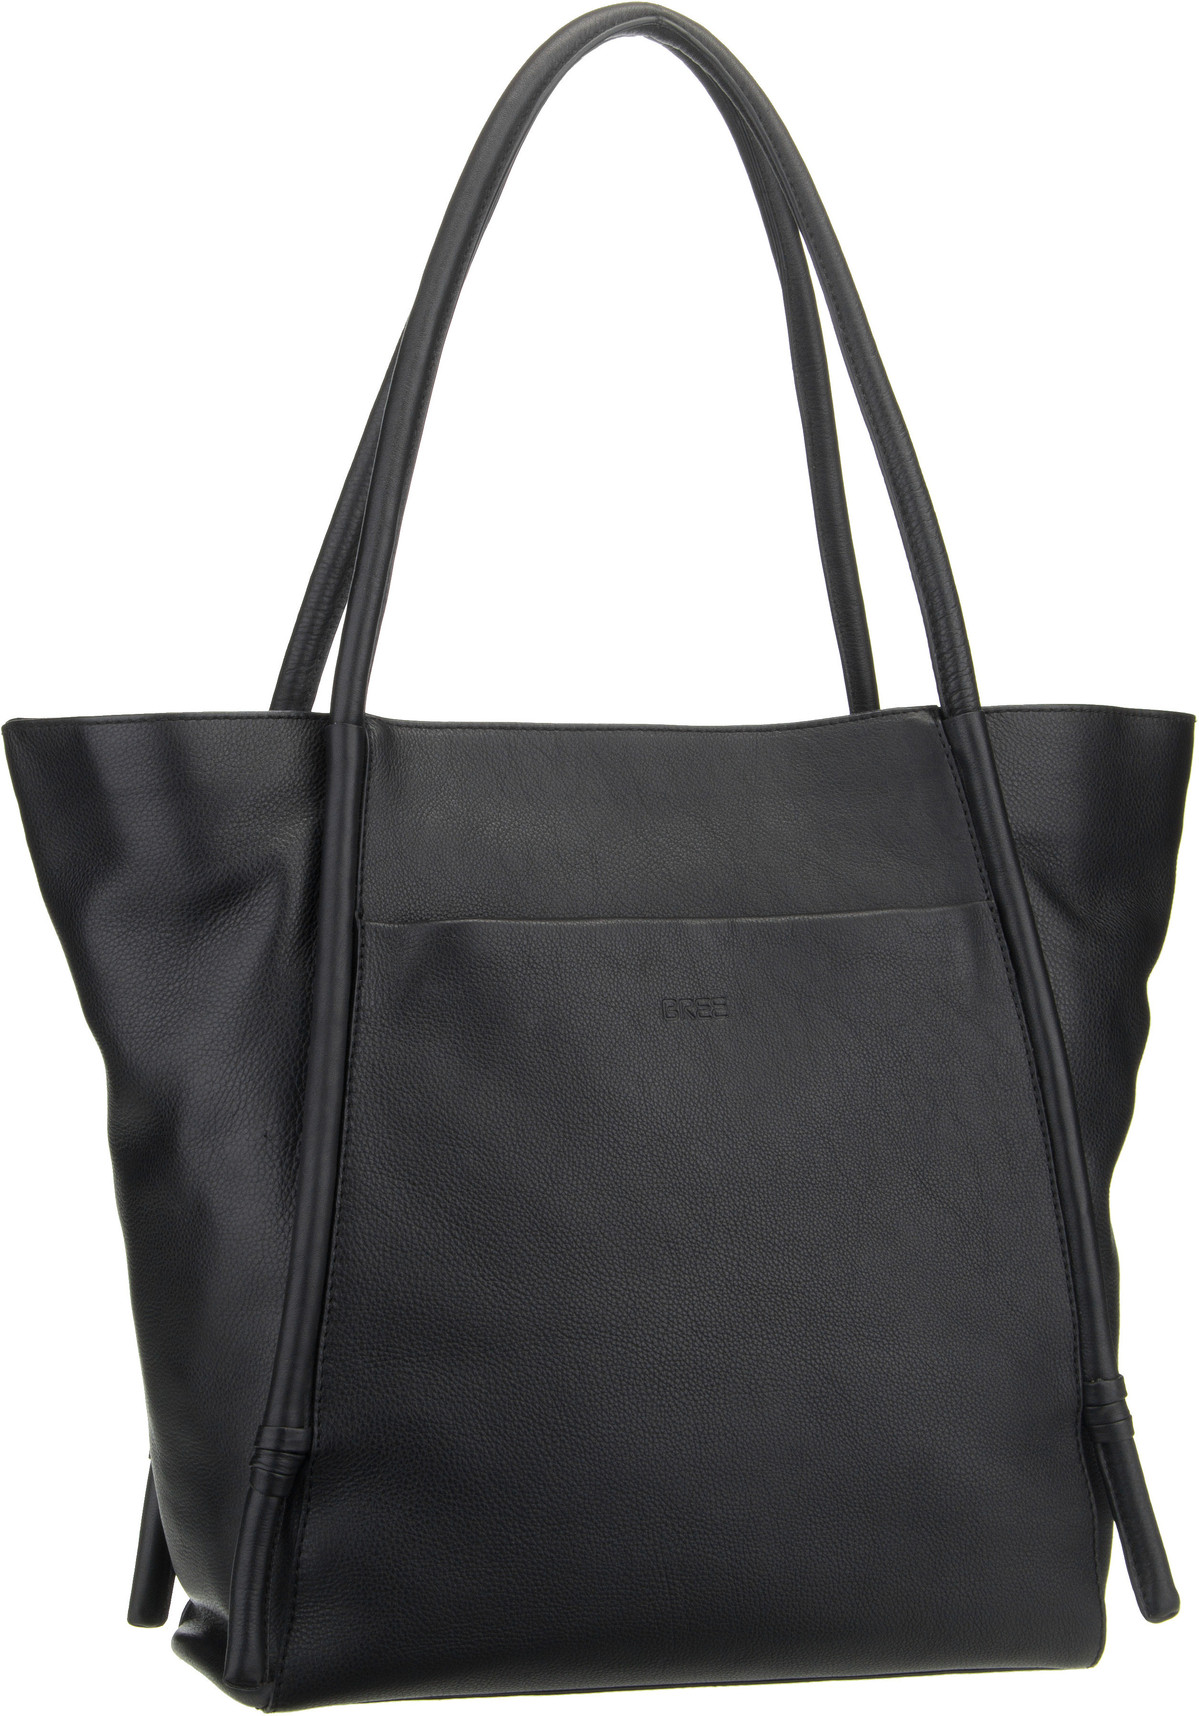 Handtasche Lofty 1 Black (14 Liter)